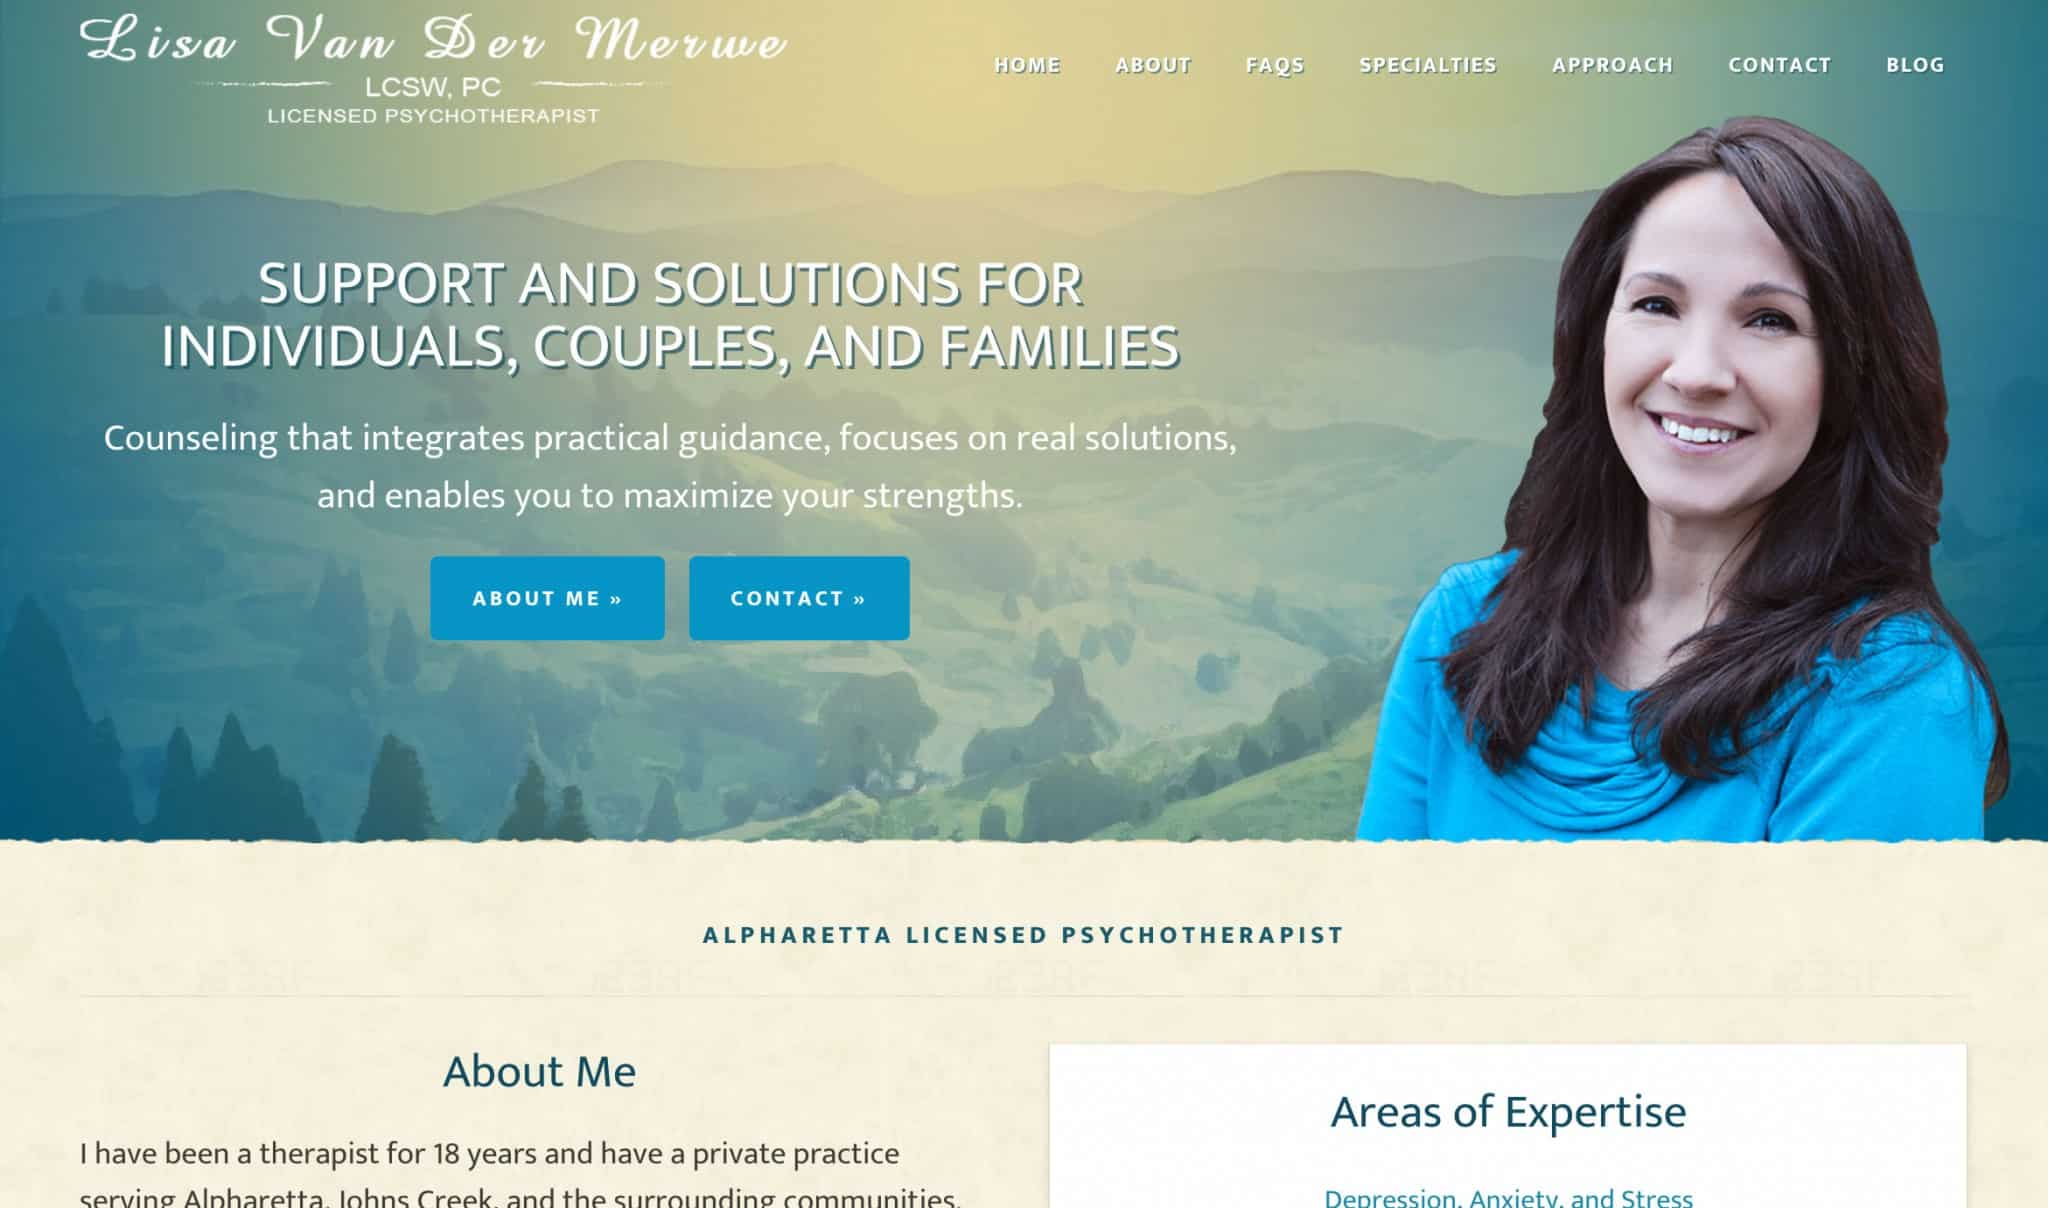 lv-counseling-web-design